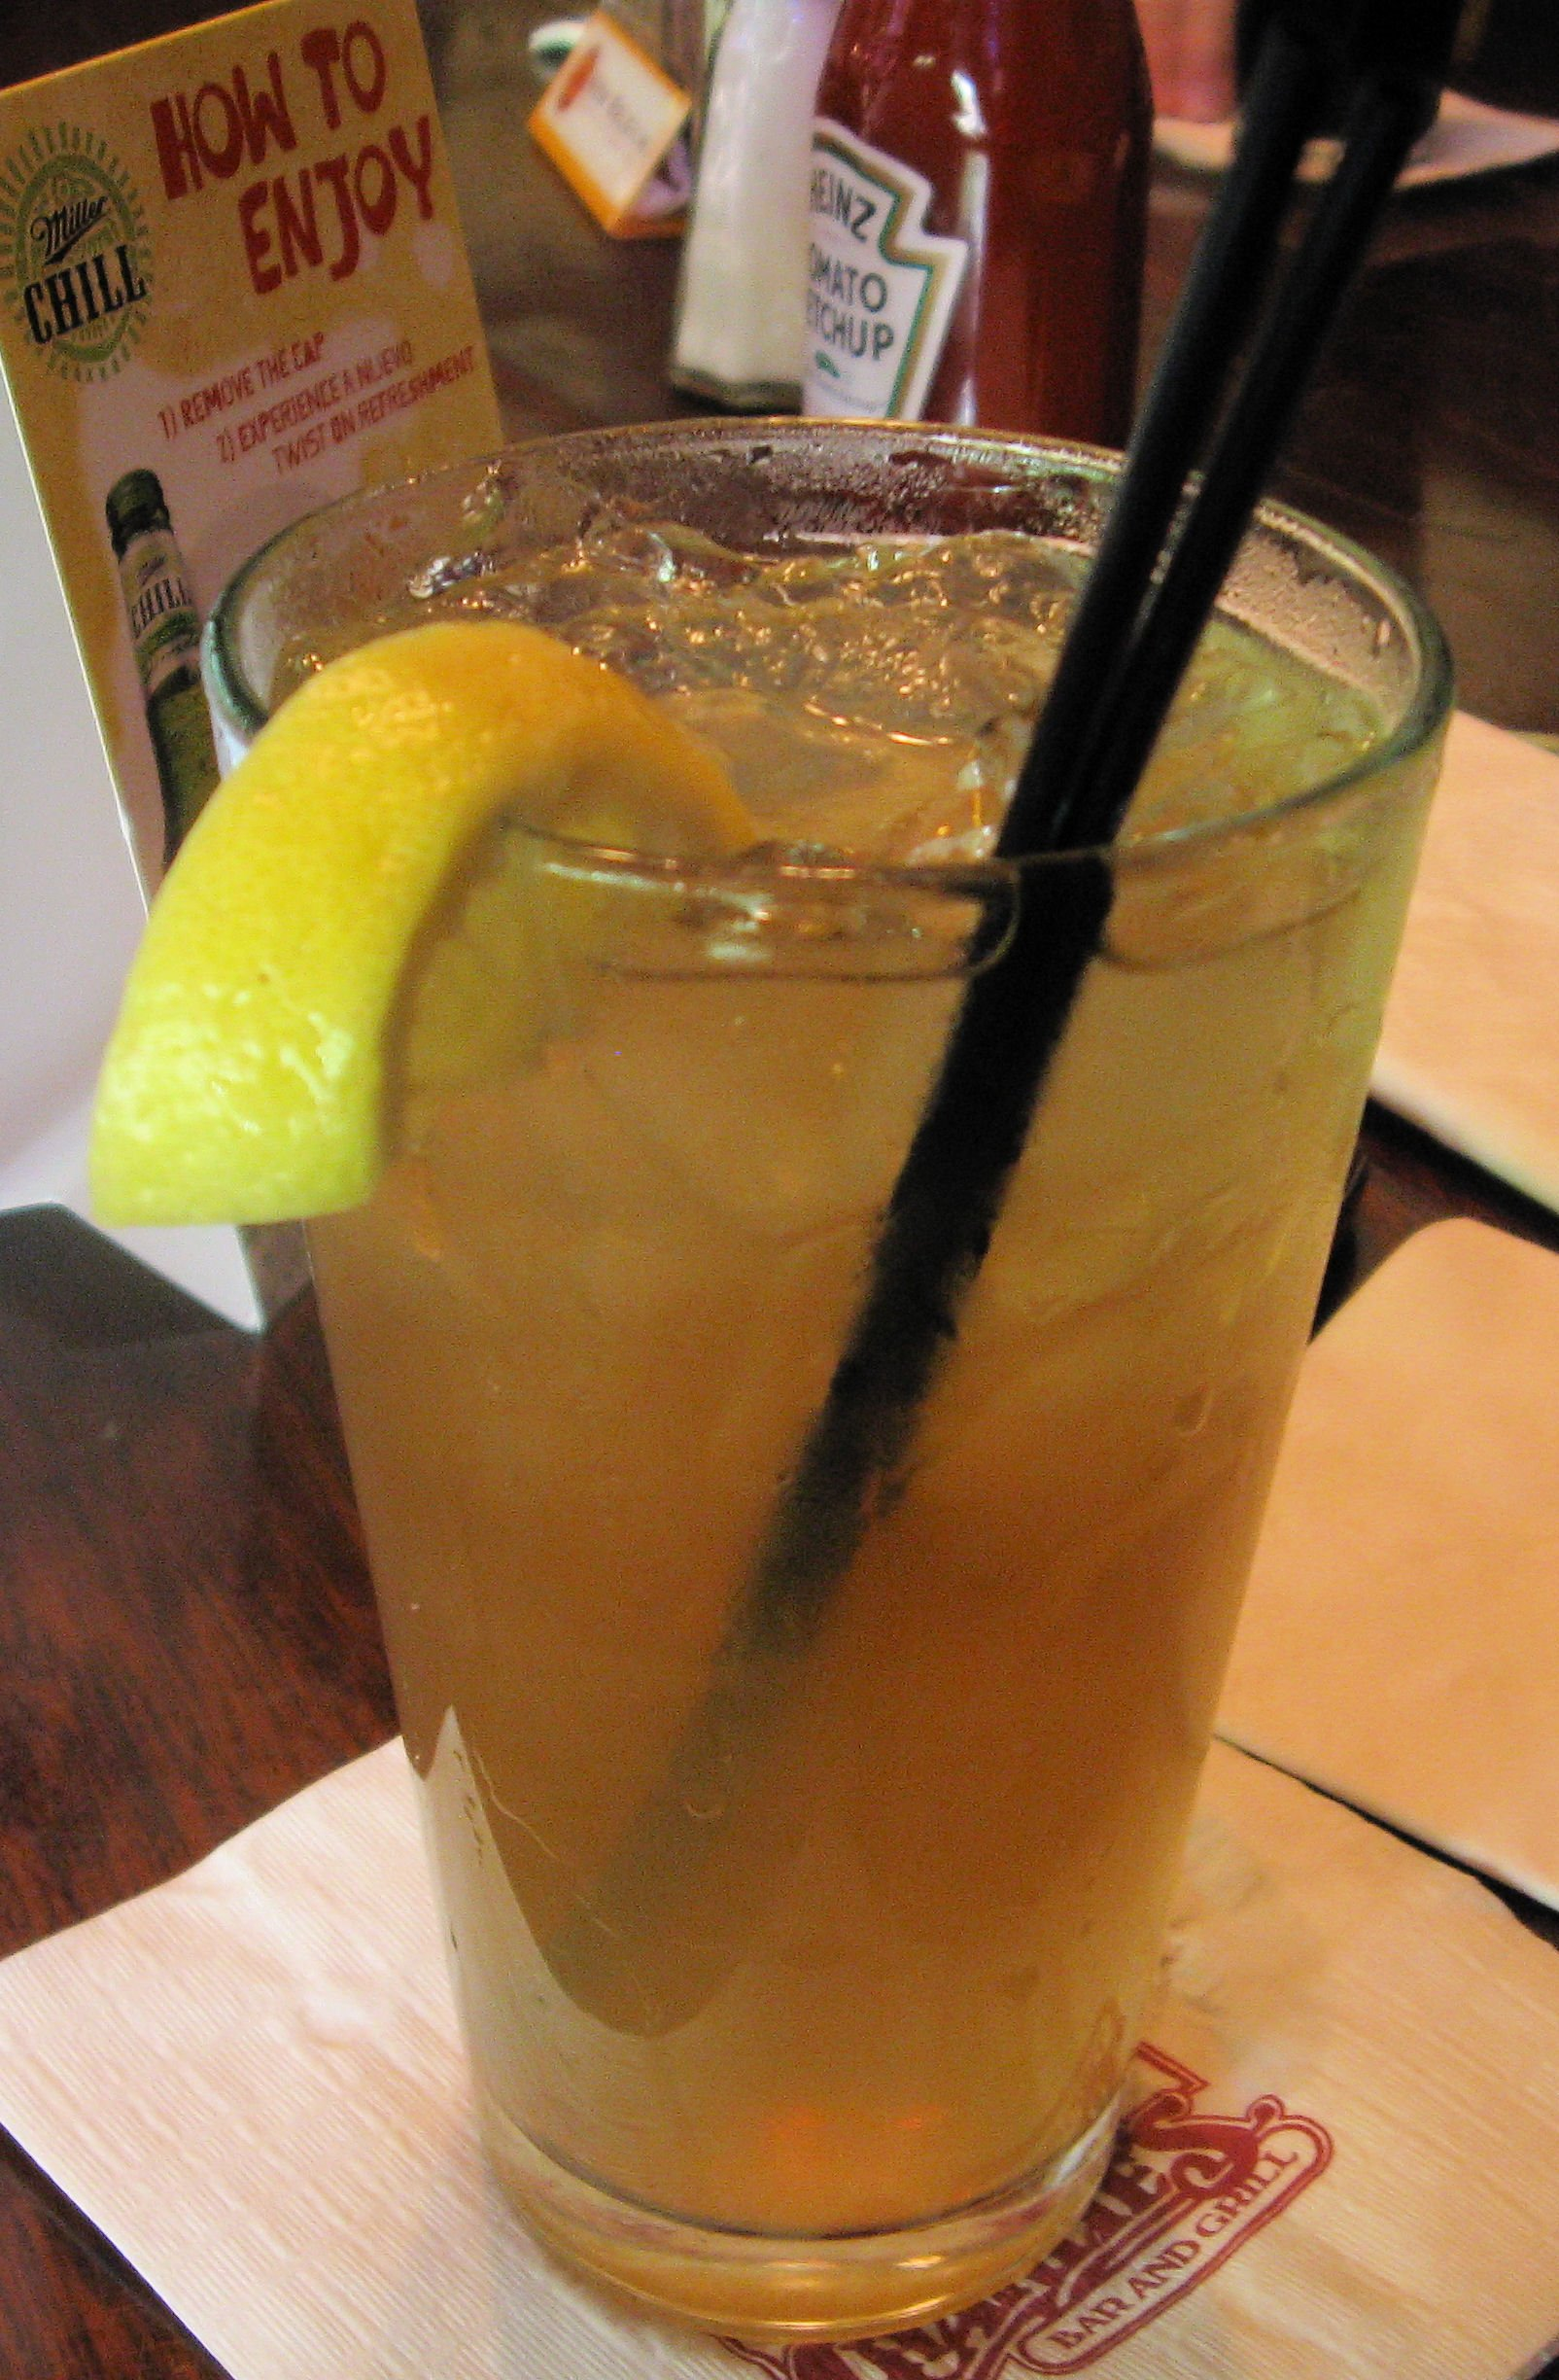 File:Long Island Iced Tea 2008.jpg - Wikimedia Commons